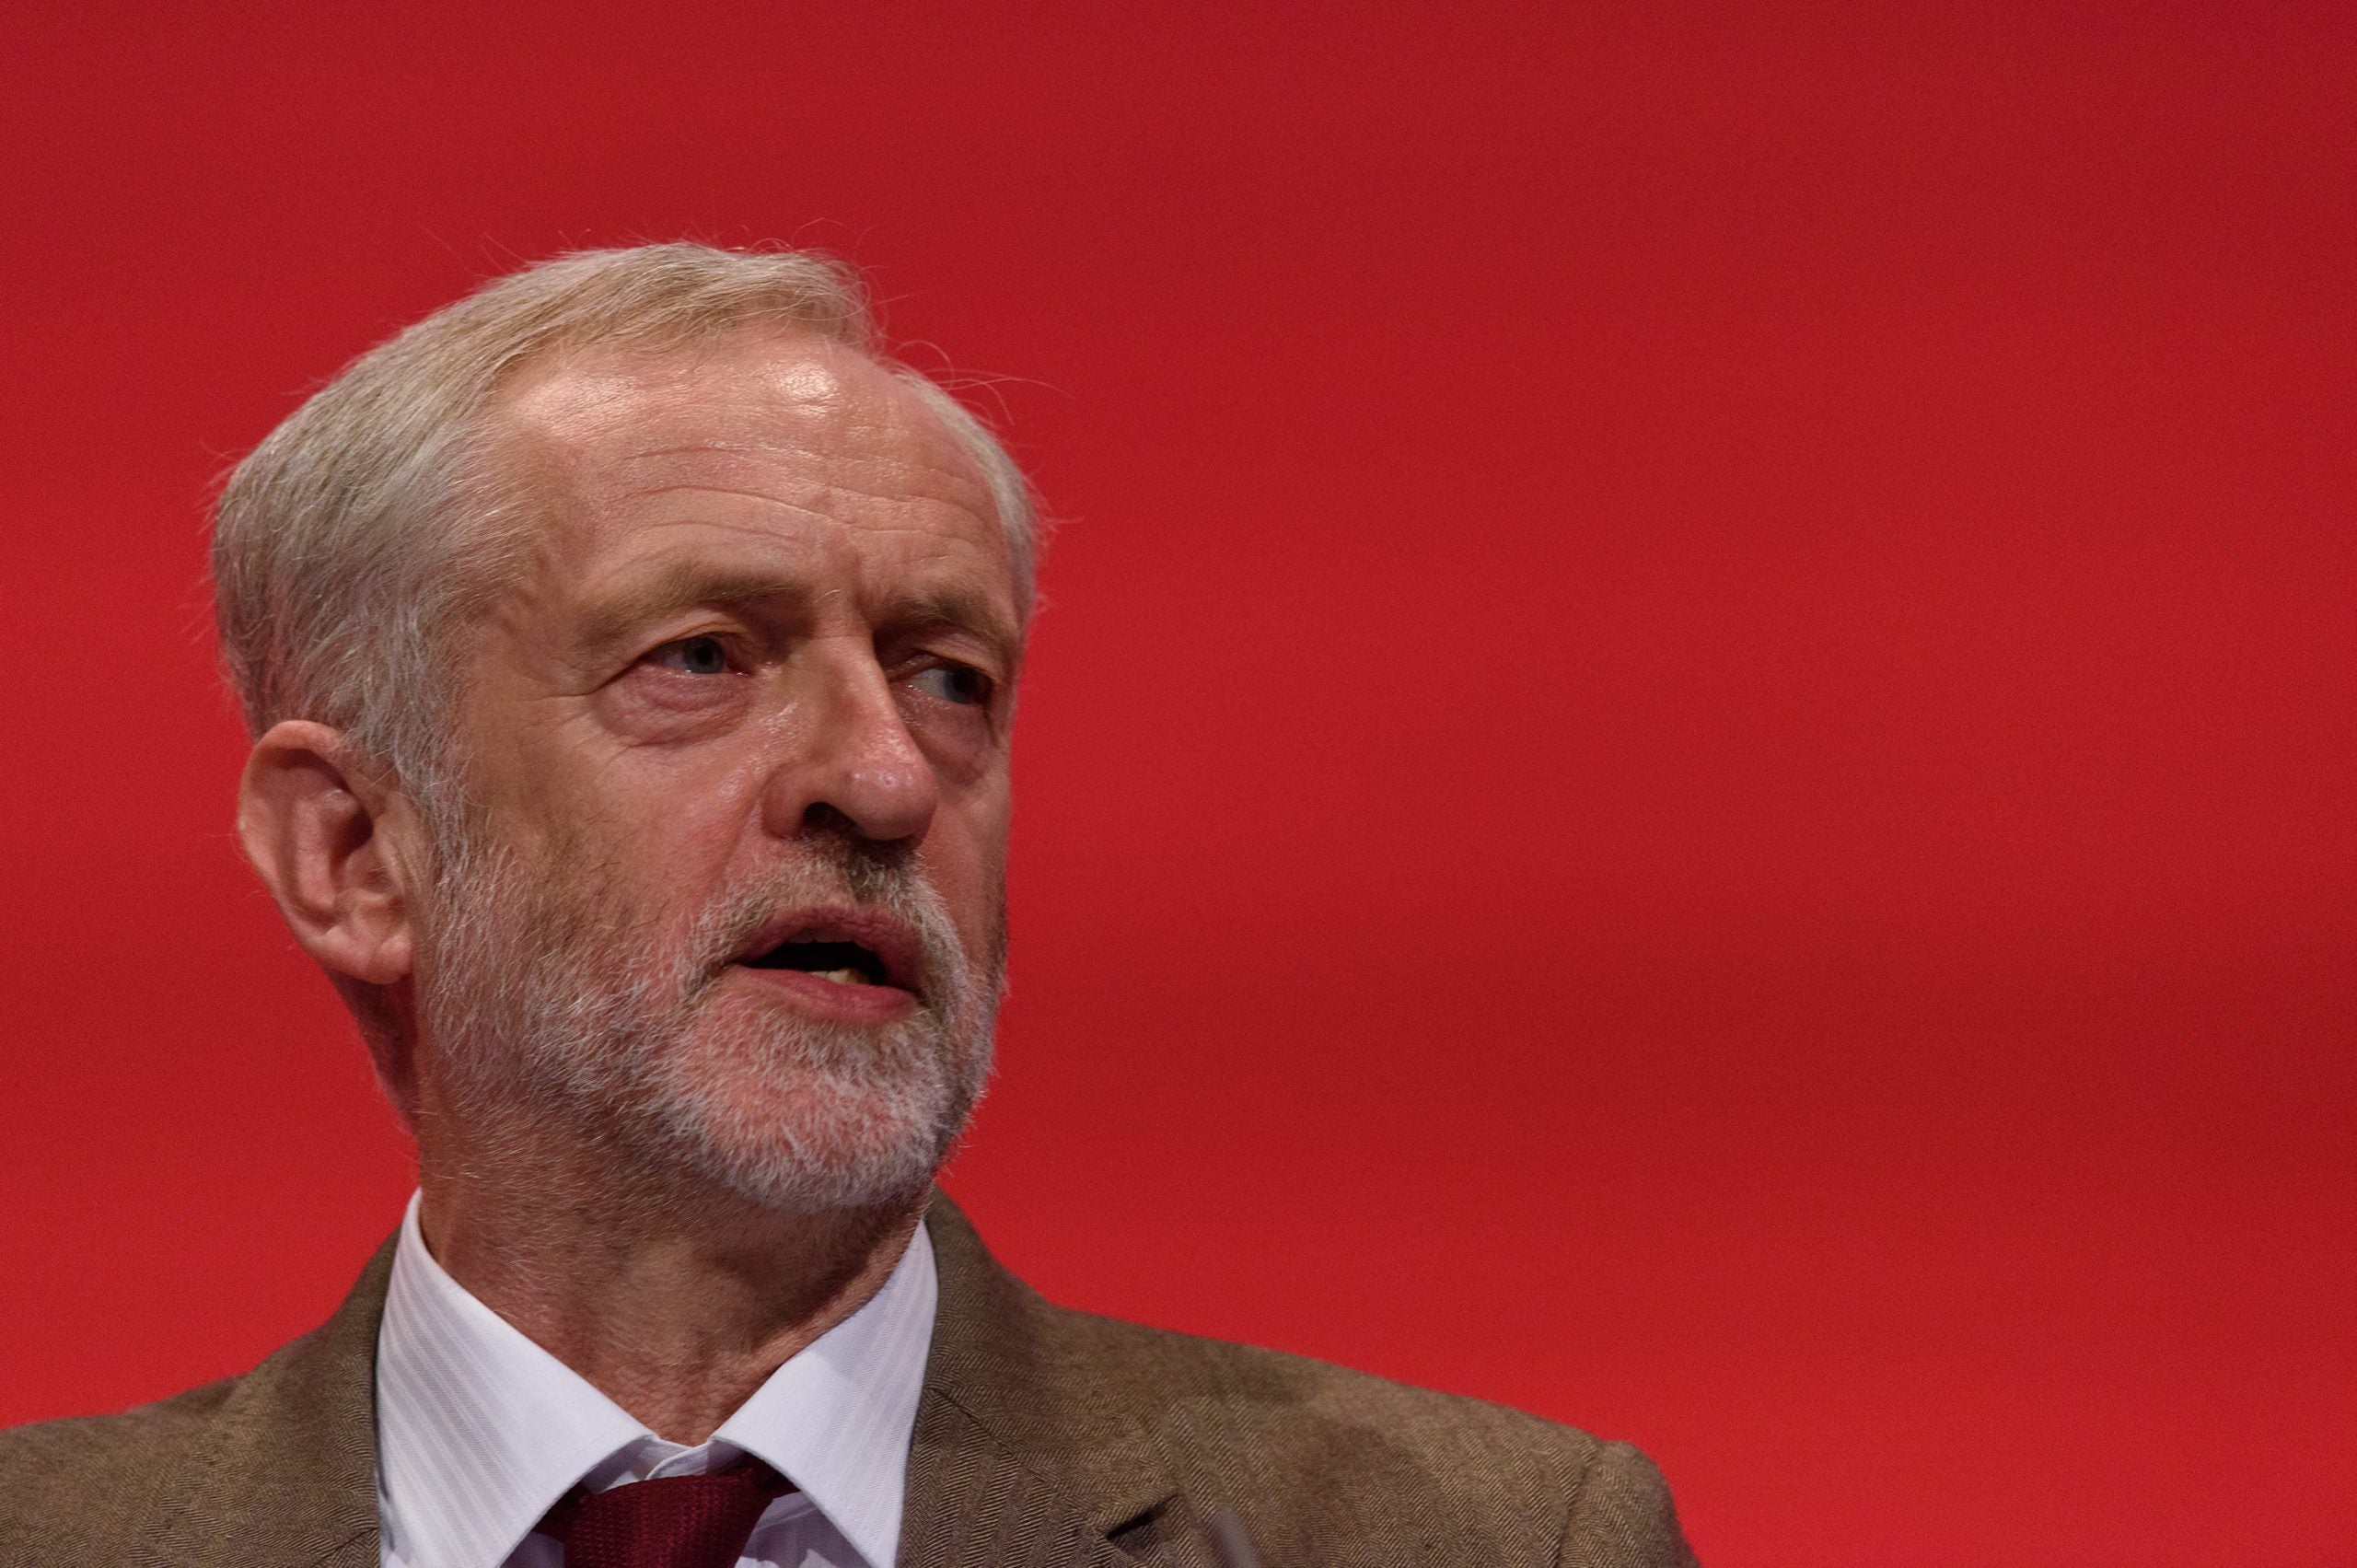 The Syria vote shows that Jeremy Corbyn is still the right choice for Labour